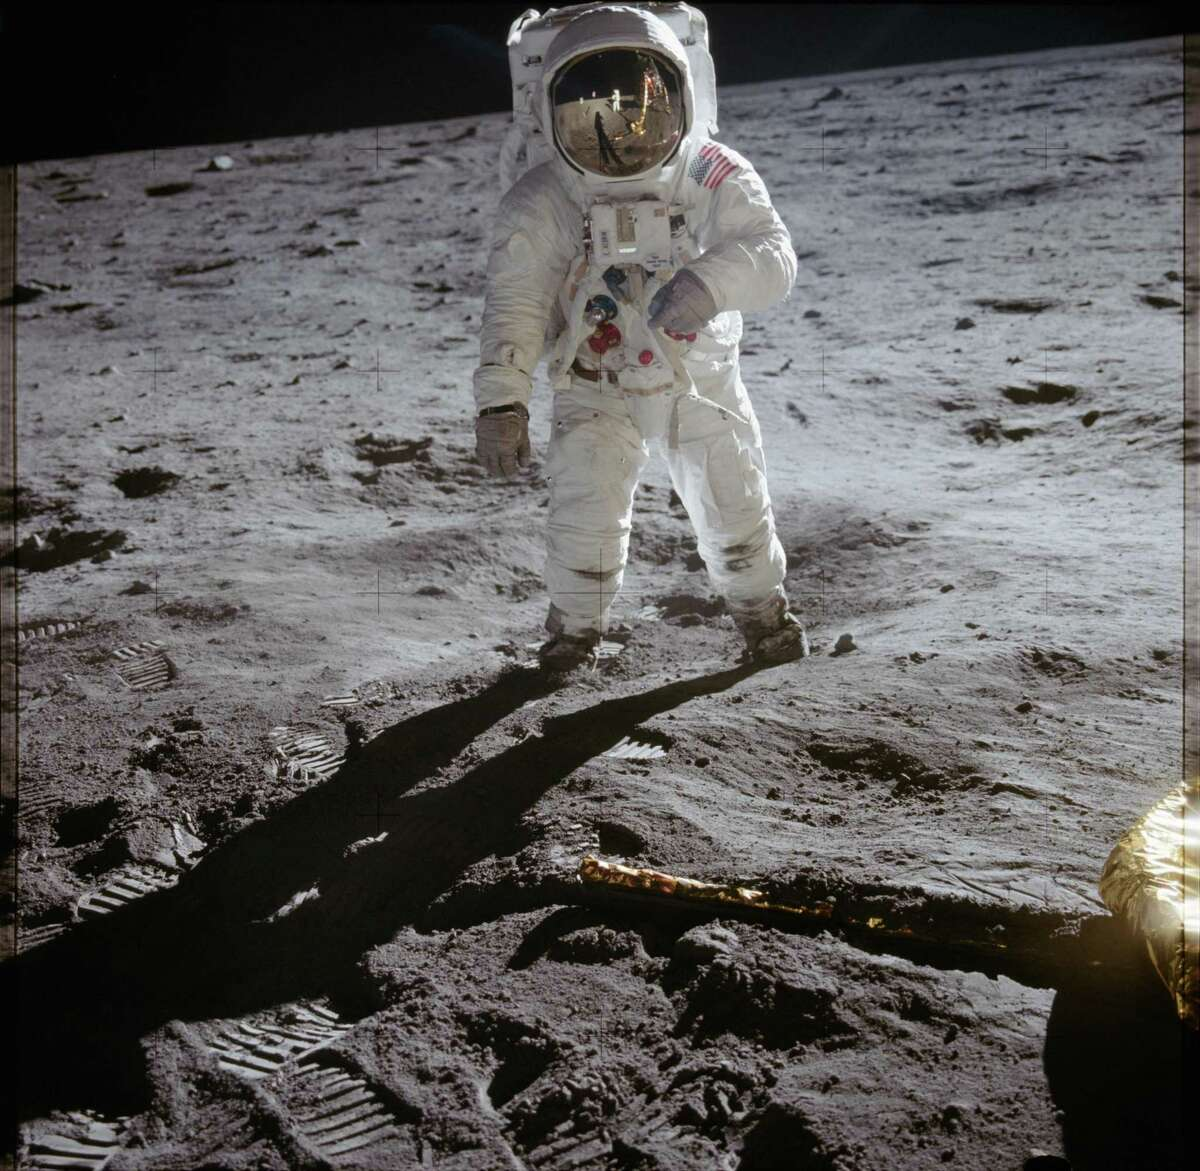 """On July 20, 1969, astronaut Buzz Aldrin walks on the surface of the moon near the leg of the Lunar Module """"Eagle"""" during the Apollo 11 extravehicular activity. Astronaut Neil Armstrong took this photograph with a 70mm lunar surface camera."""